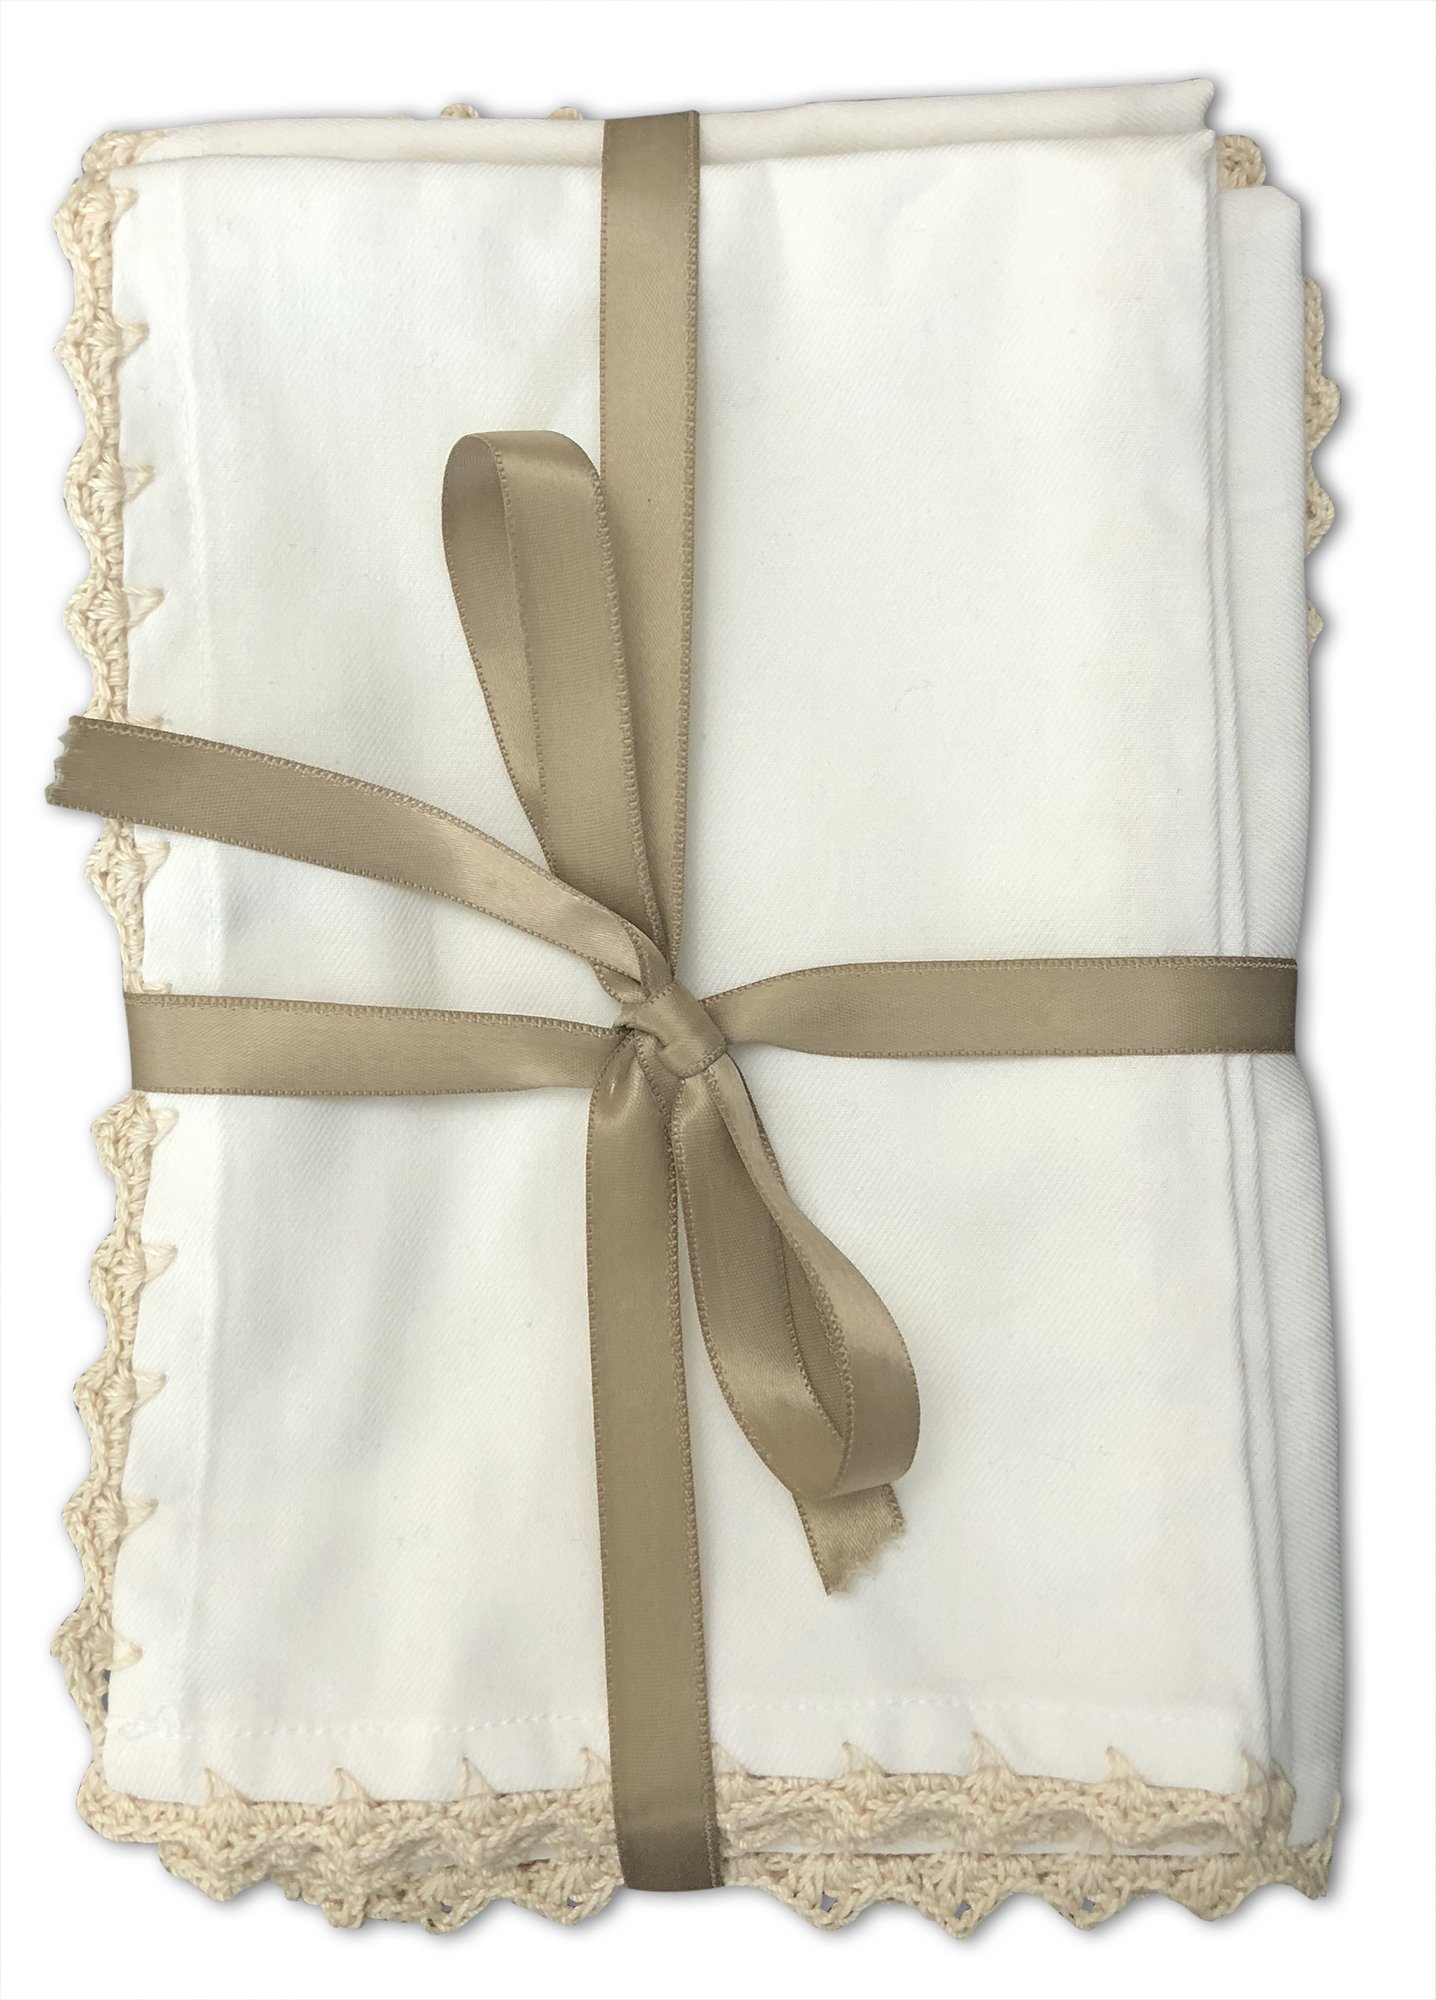 MoLi 100% Egyptian Cotton Cloth Dinner Napkins Hand Crocheted - Set of 6 Pack Lunch Linen - Elegant Decorative Fabric Handmade Table Linens - Servilletas de Tela Wedding Napkin (White)